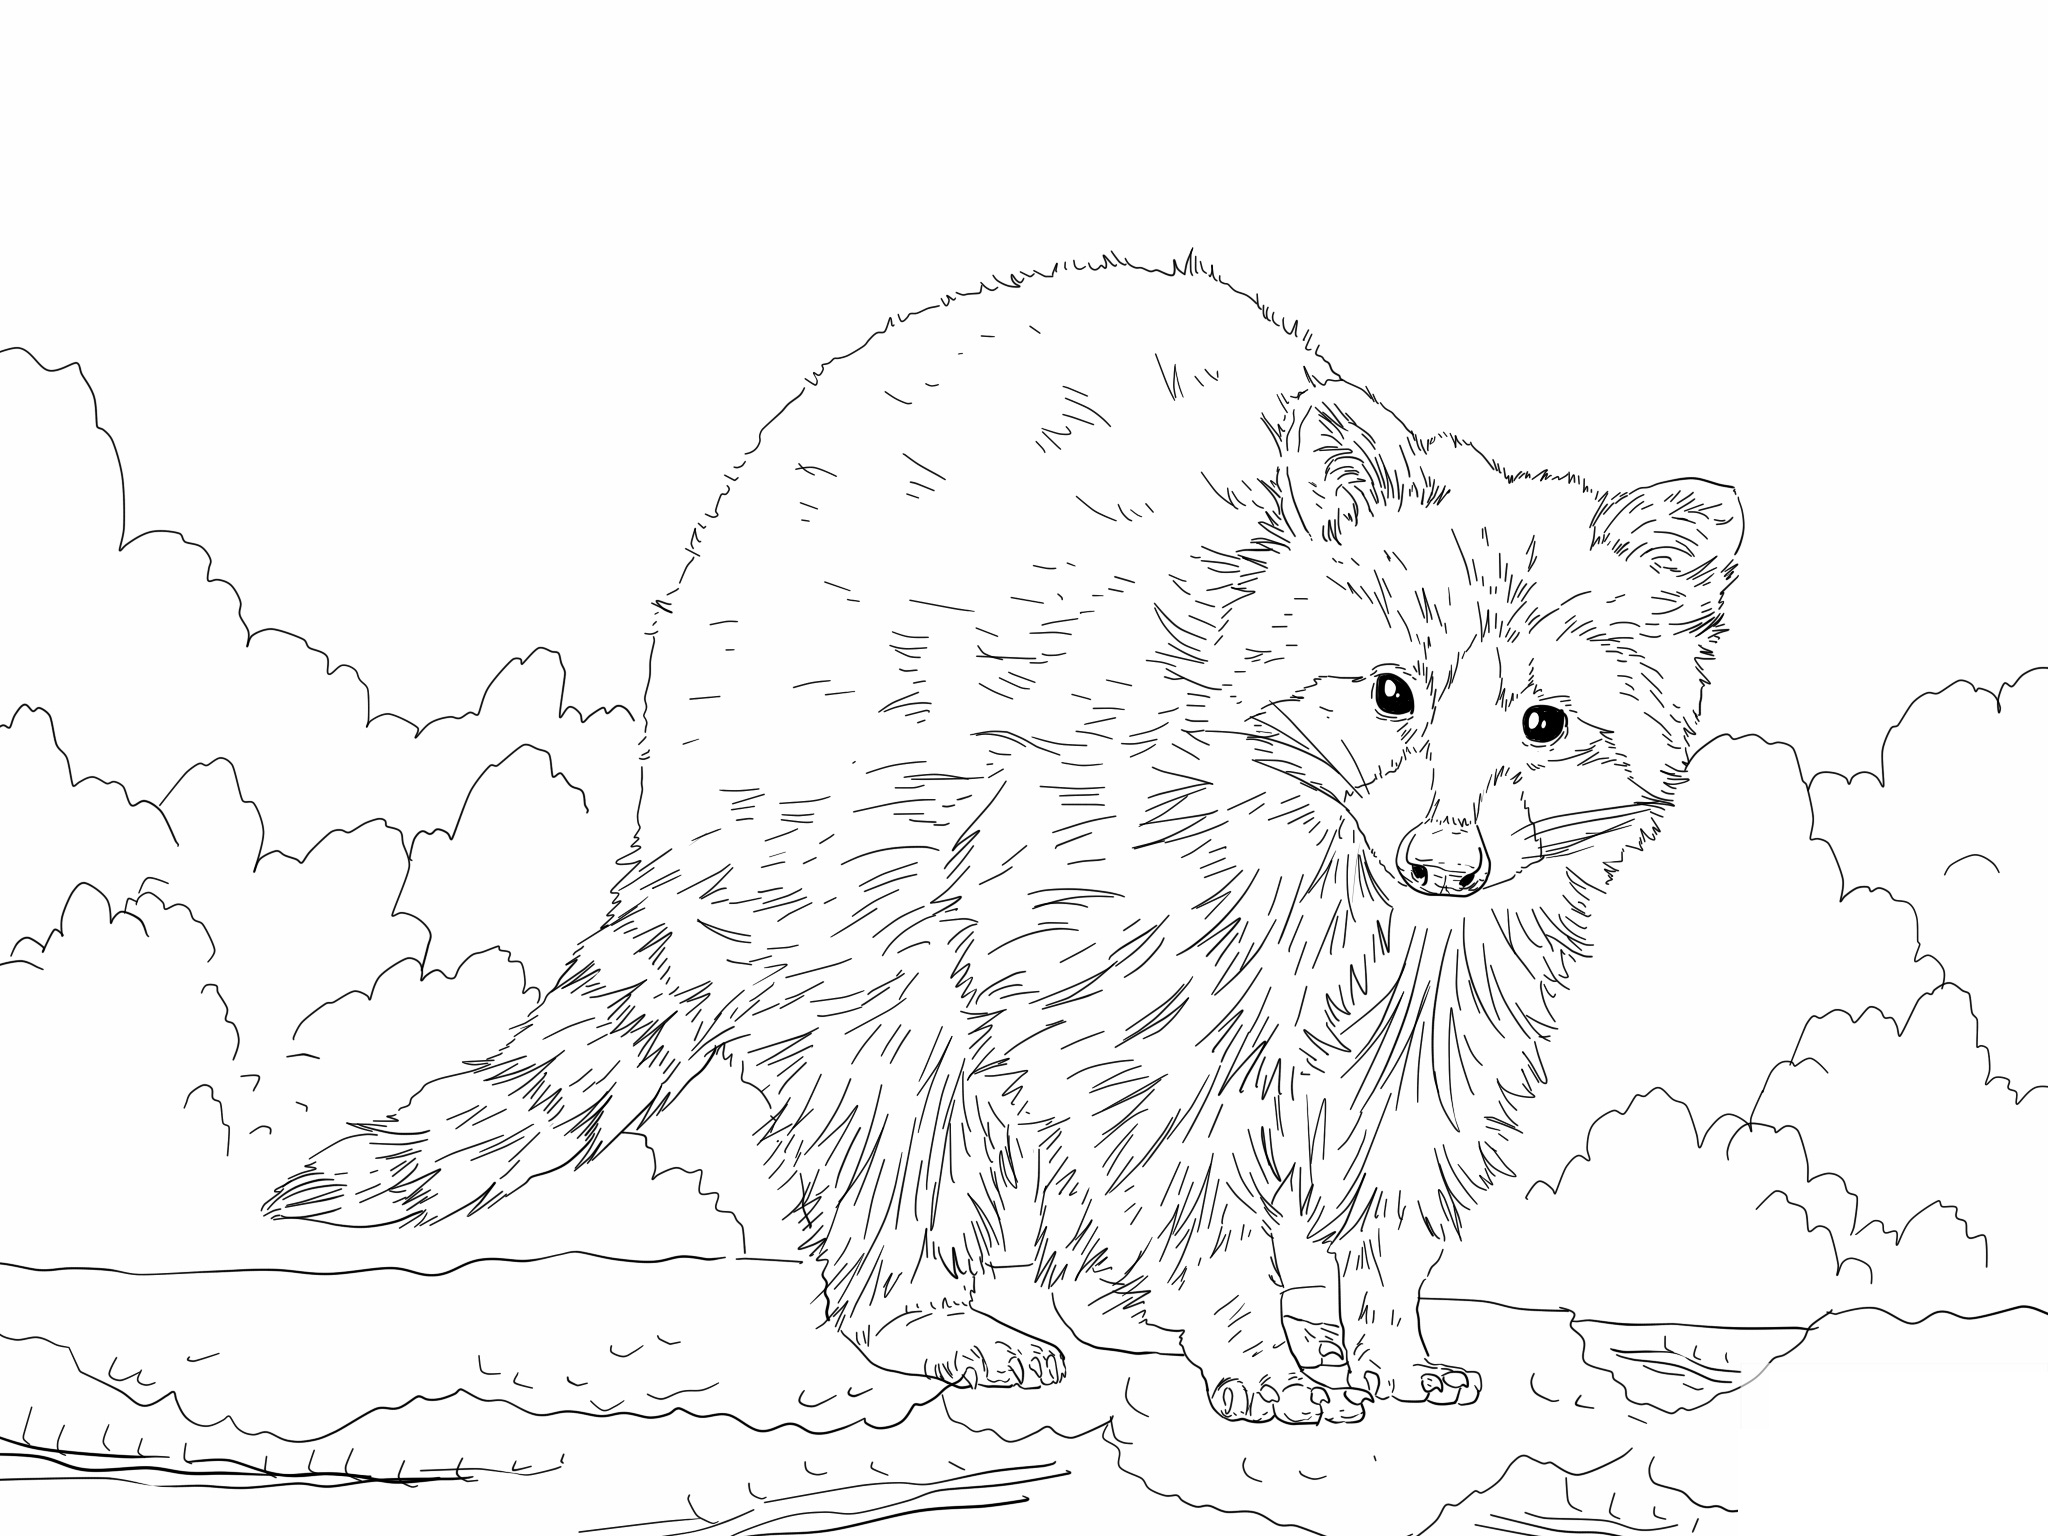 Raccoon Coloring Pages to download